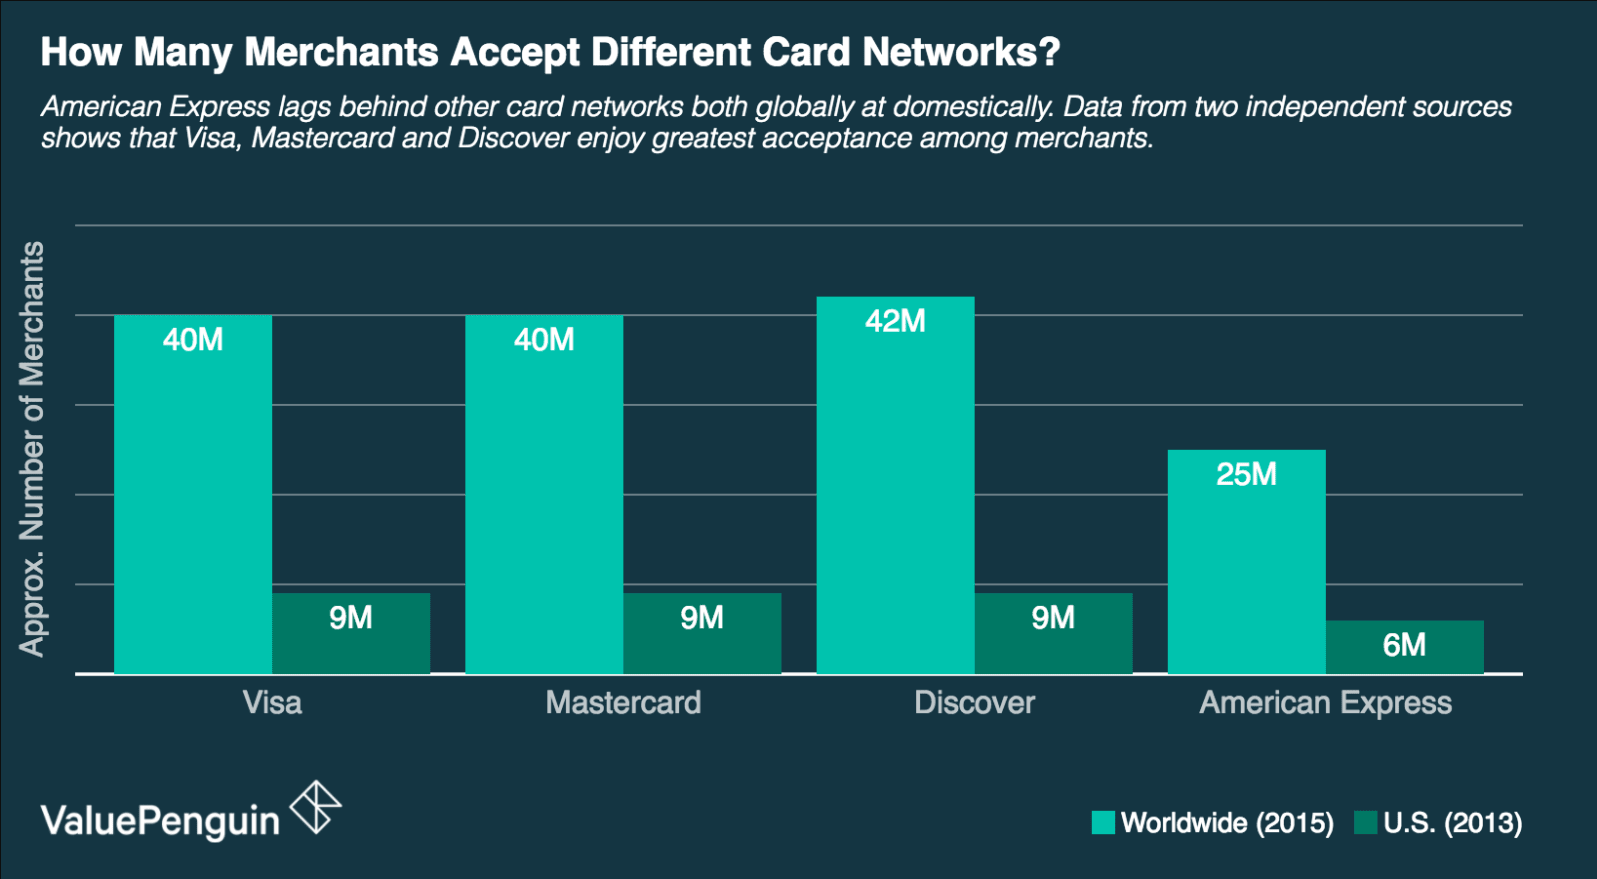 How Many Merchants Accept Different Card Networks?